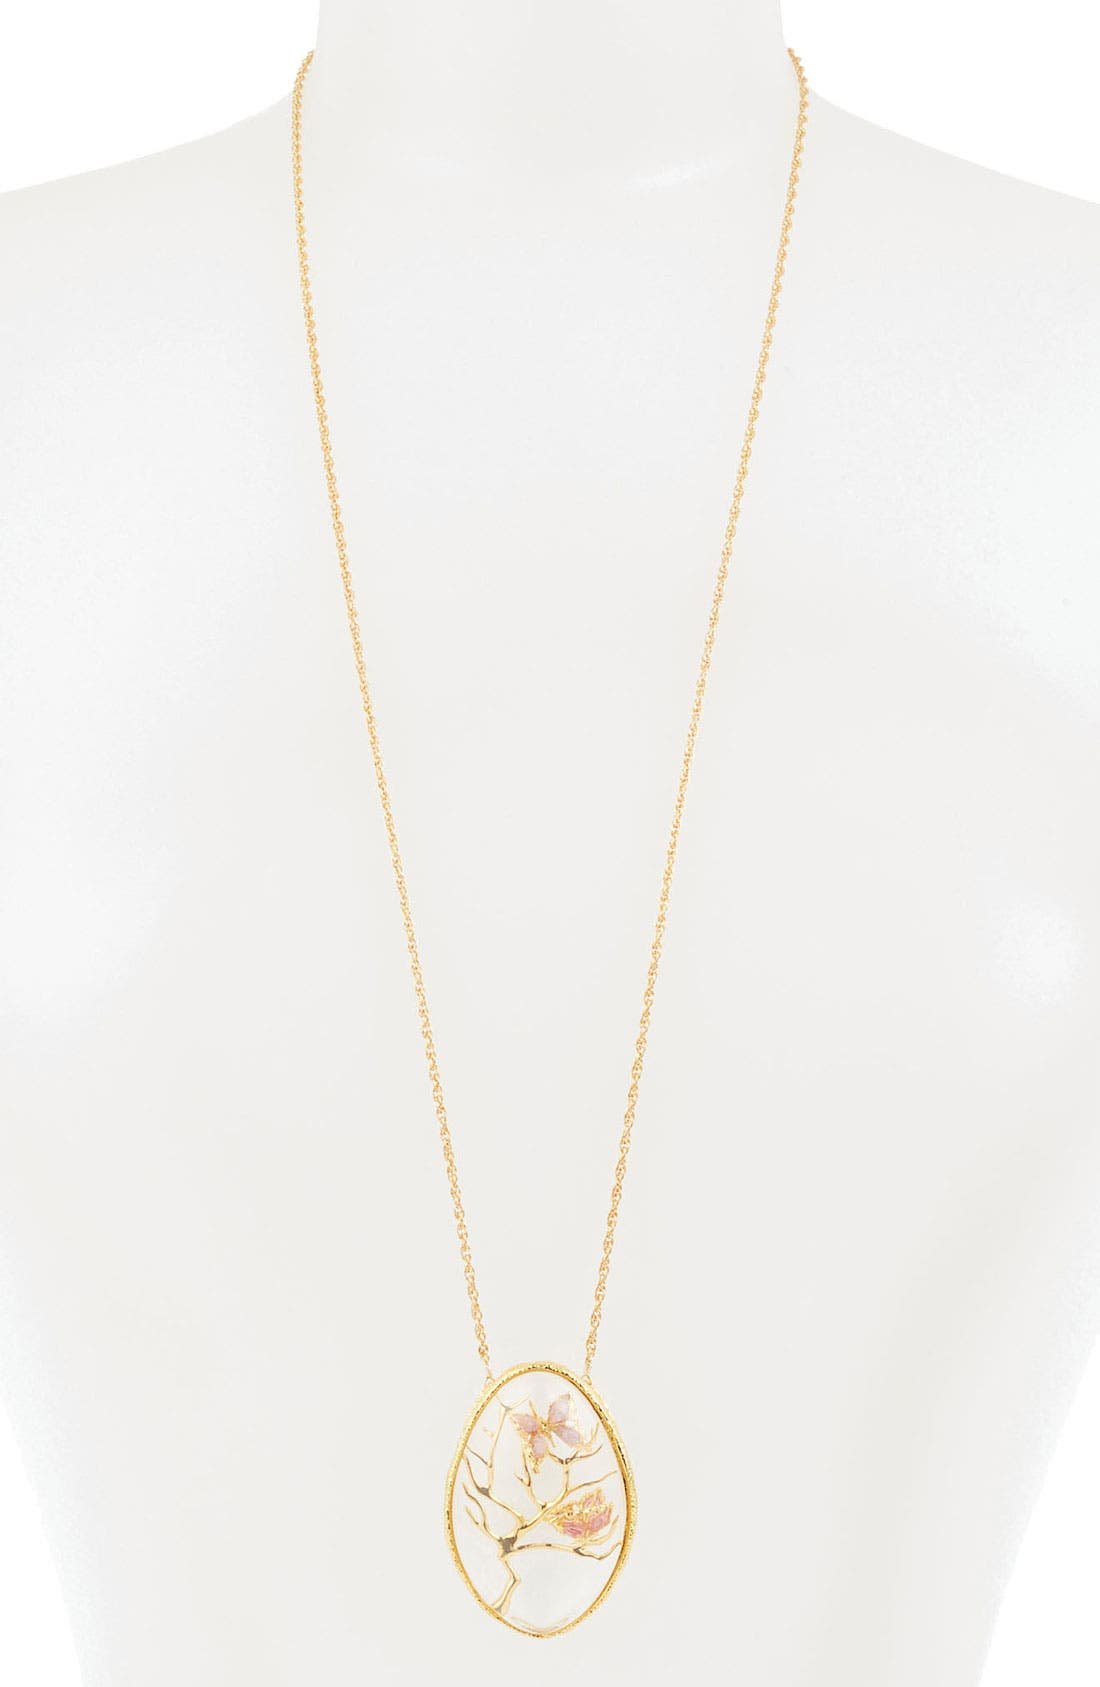 Main Image - Alexis Bittar 'Elements - Floral' Long Pendant Necklace